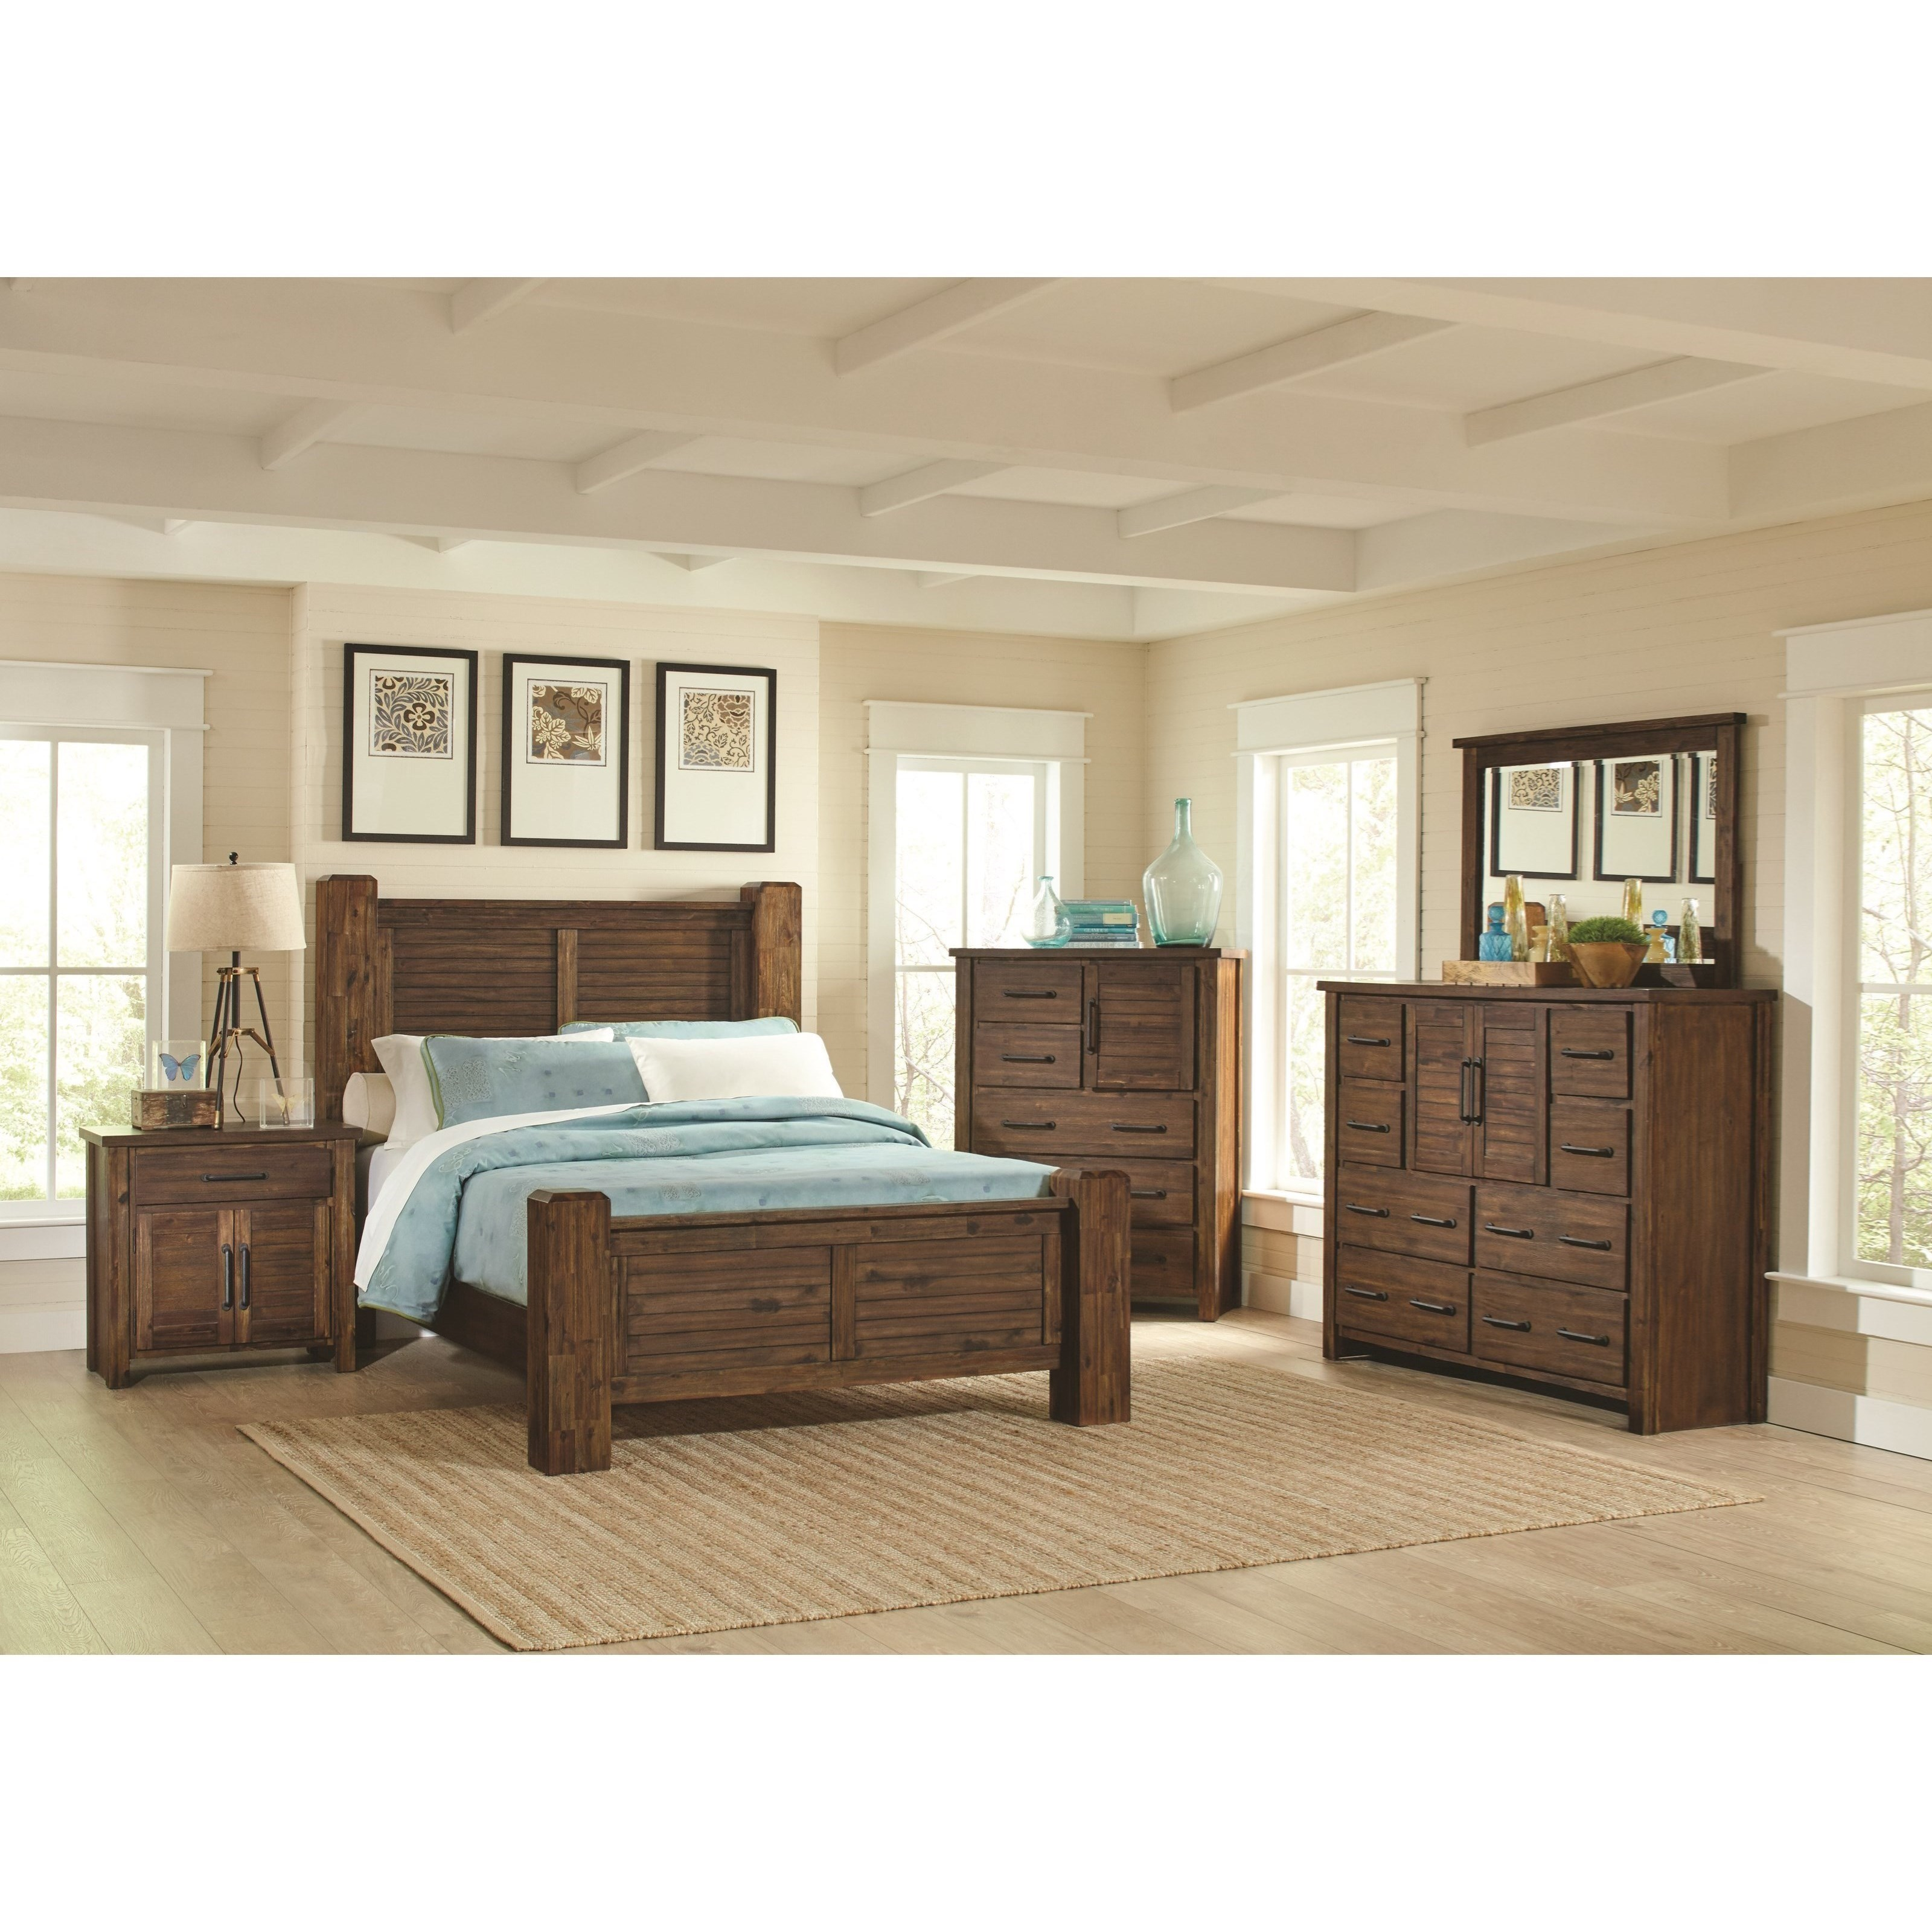 Sutter Creek Queen Bedroom Group by Coaster at Northeast Factory Direct